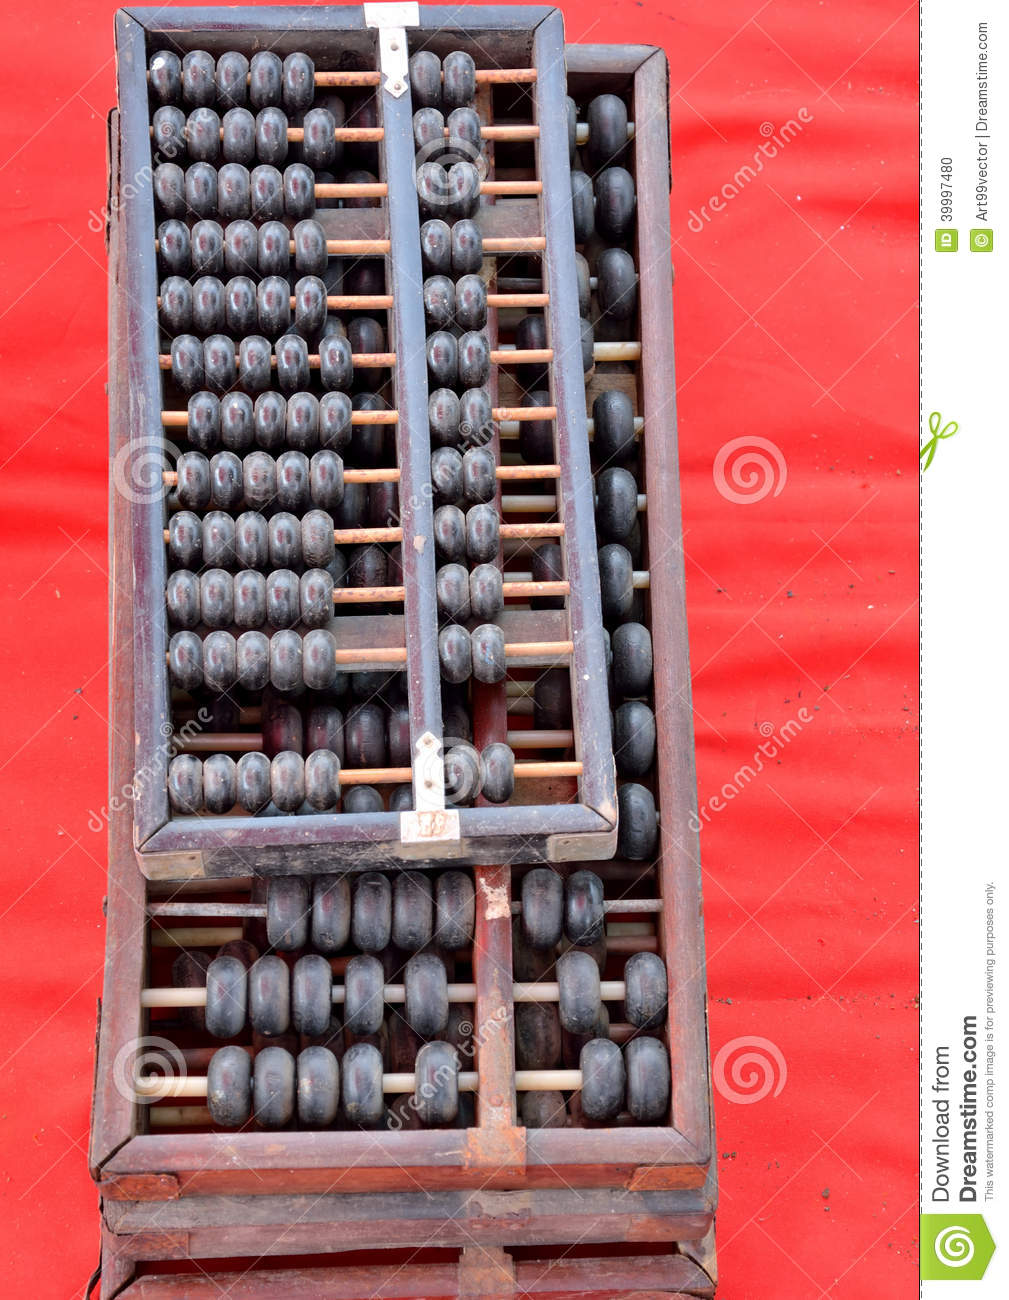 Calculator old classic stock photo  Image of ancient - 39997480